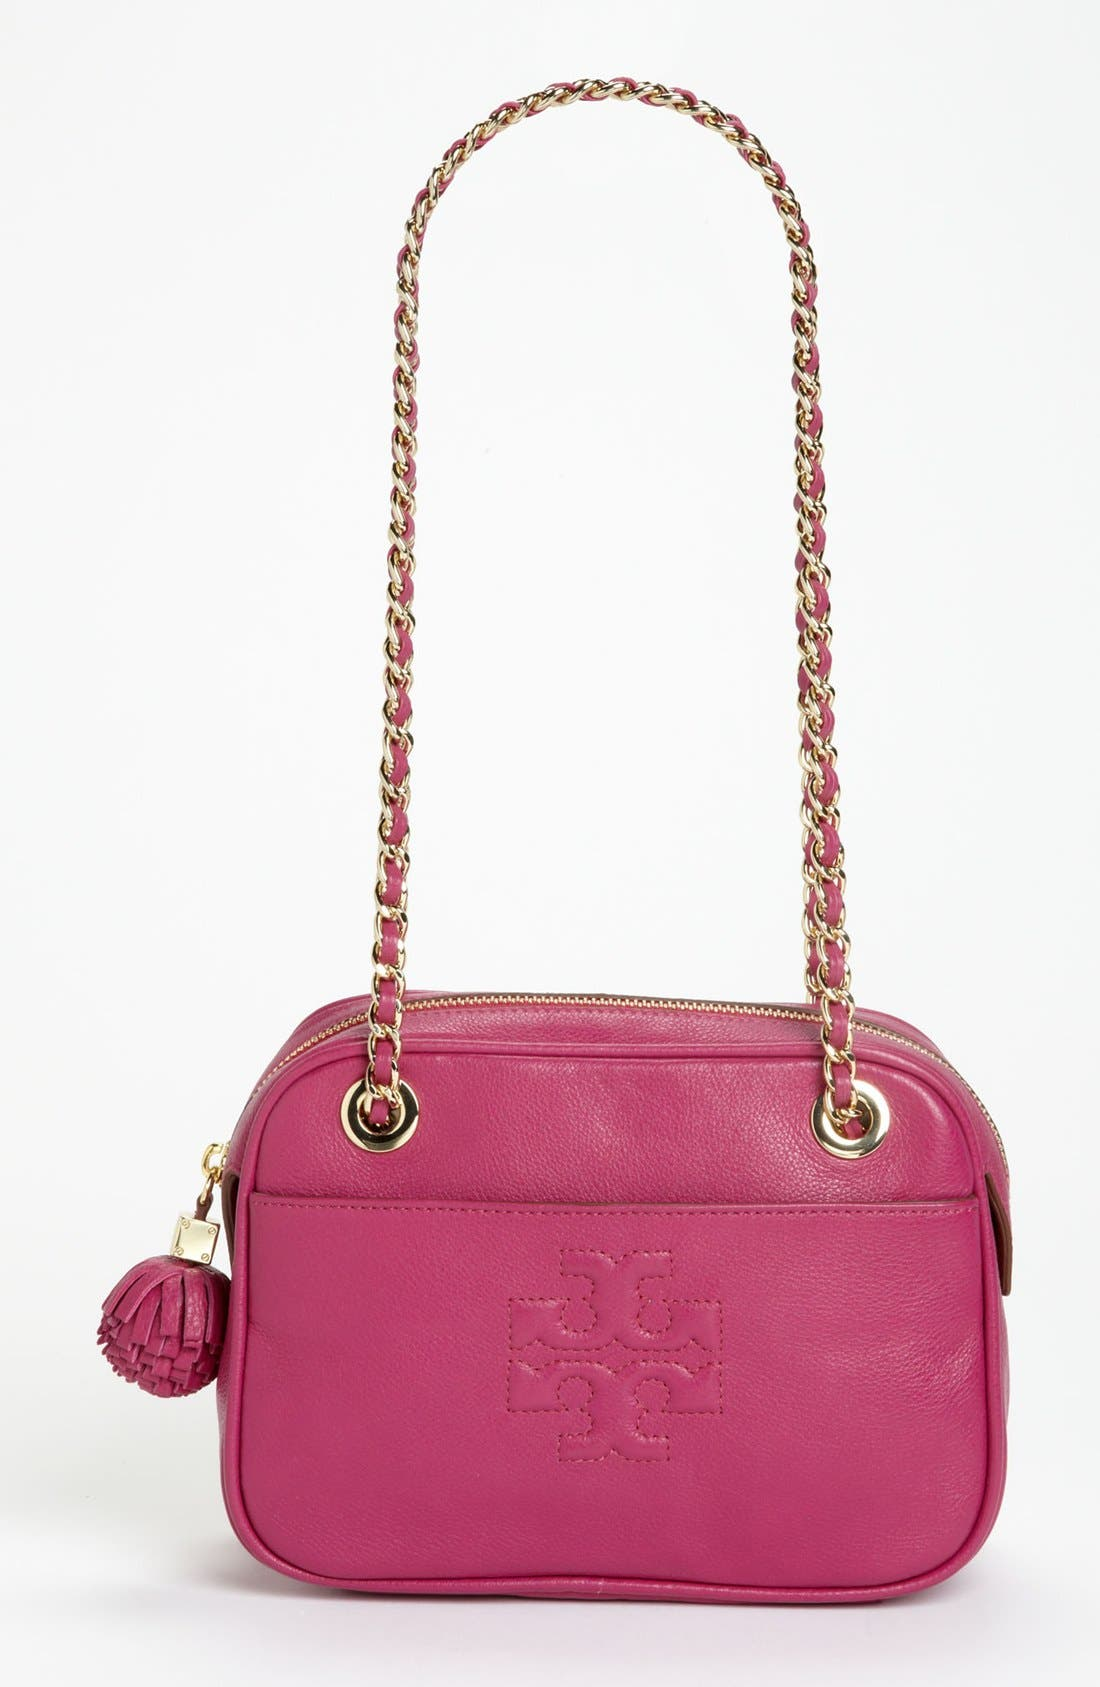 Alternate Image 1 Selected - Tory Burch 'Thea' Leather Crossbody Bag